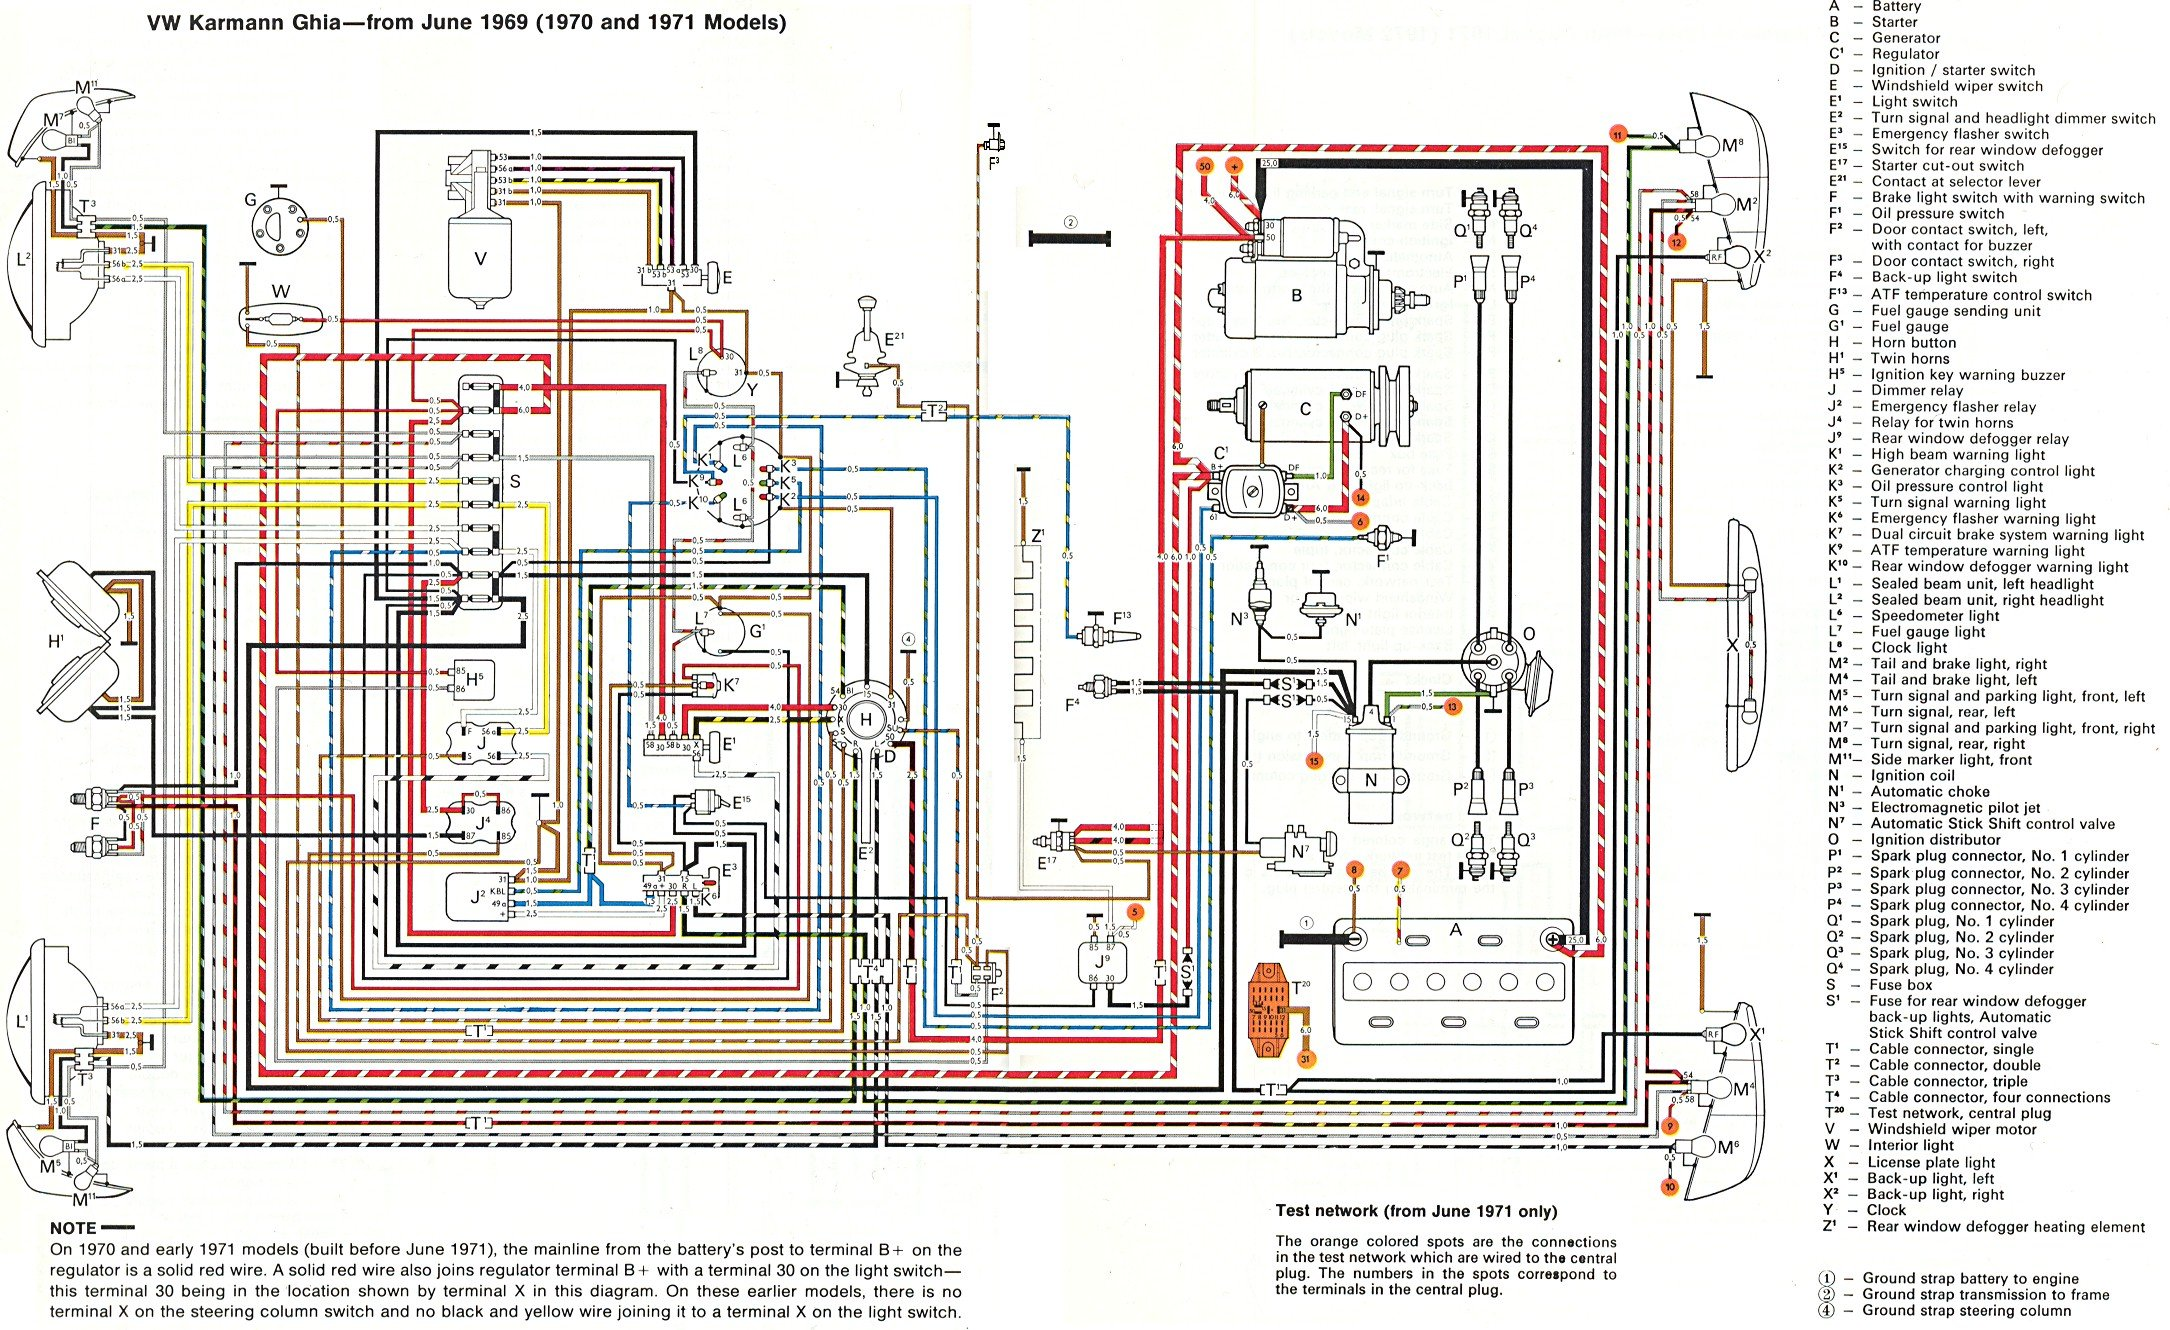 1974 Pontiac Firebird Wiring Pdf Great Installation Of 1970 Lemans Harness Thesamba Com Karmann Ghia Diagrams Rh 1973 Gto